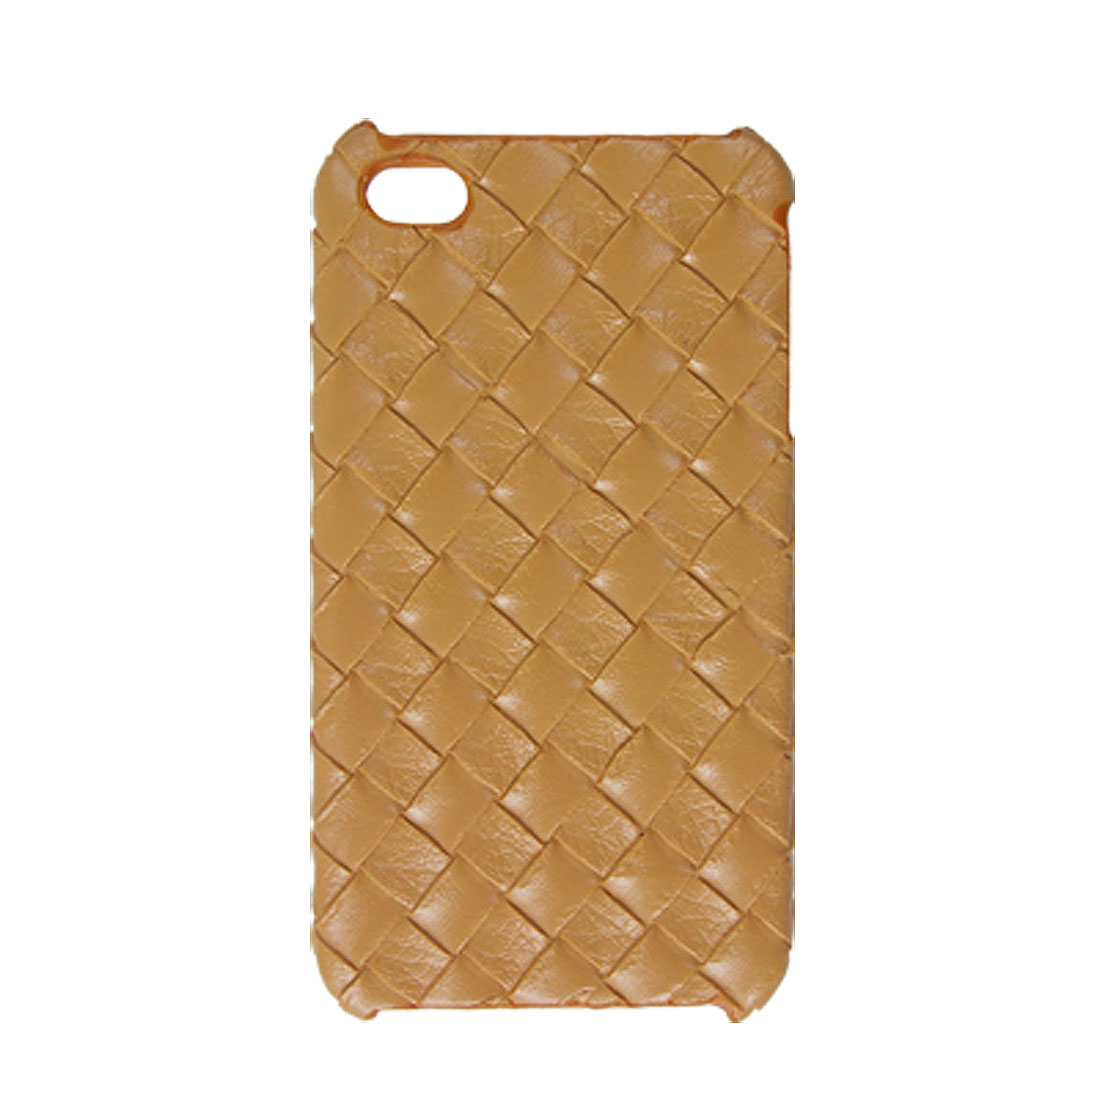 Nonslip Woven Pattern Hard Plastic Back Cover Brown for iPhone 4 4G